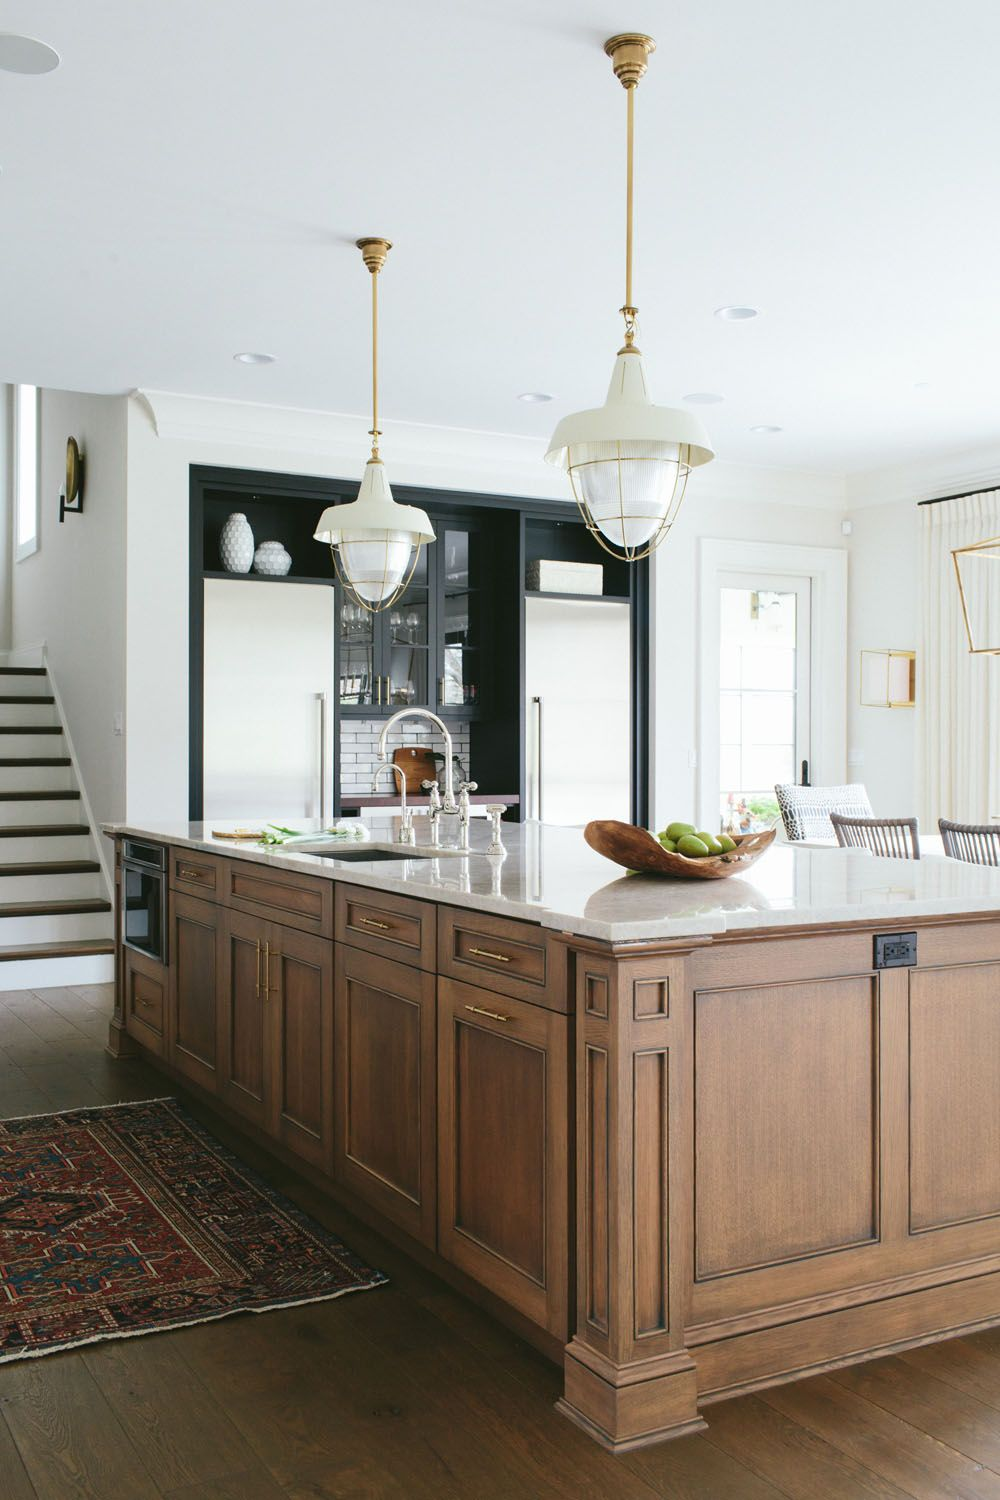 Pin by Felicity Simpson on Dream kitchens   Pinterest   Aga stove ...